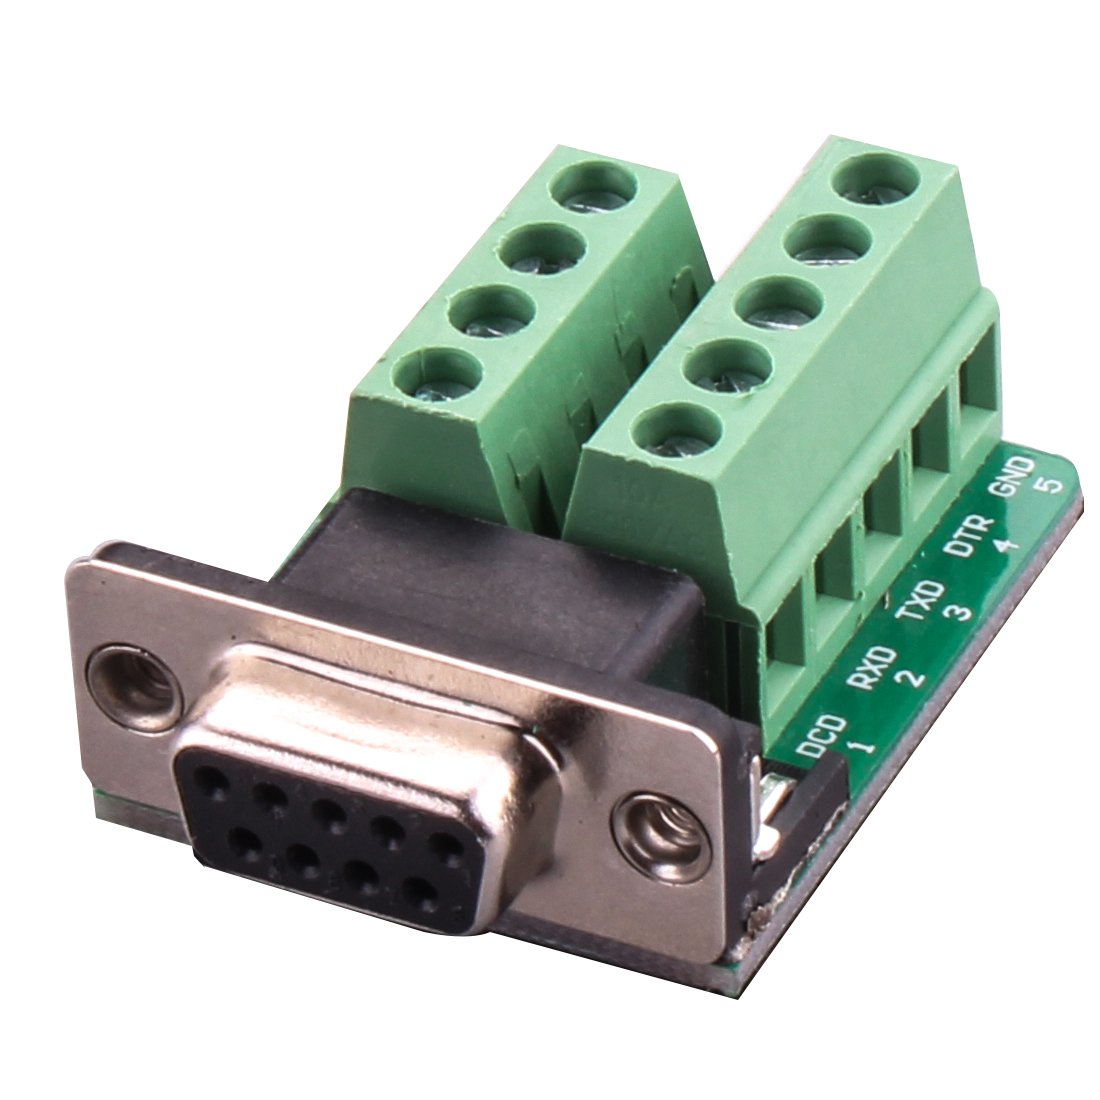 DB9 Adapter --Connector DB9 RS232 D-SUB Female Plug 9-pin Port Adapter to Terminal Connector Signal Module (Module B)